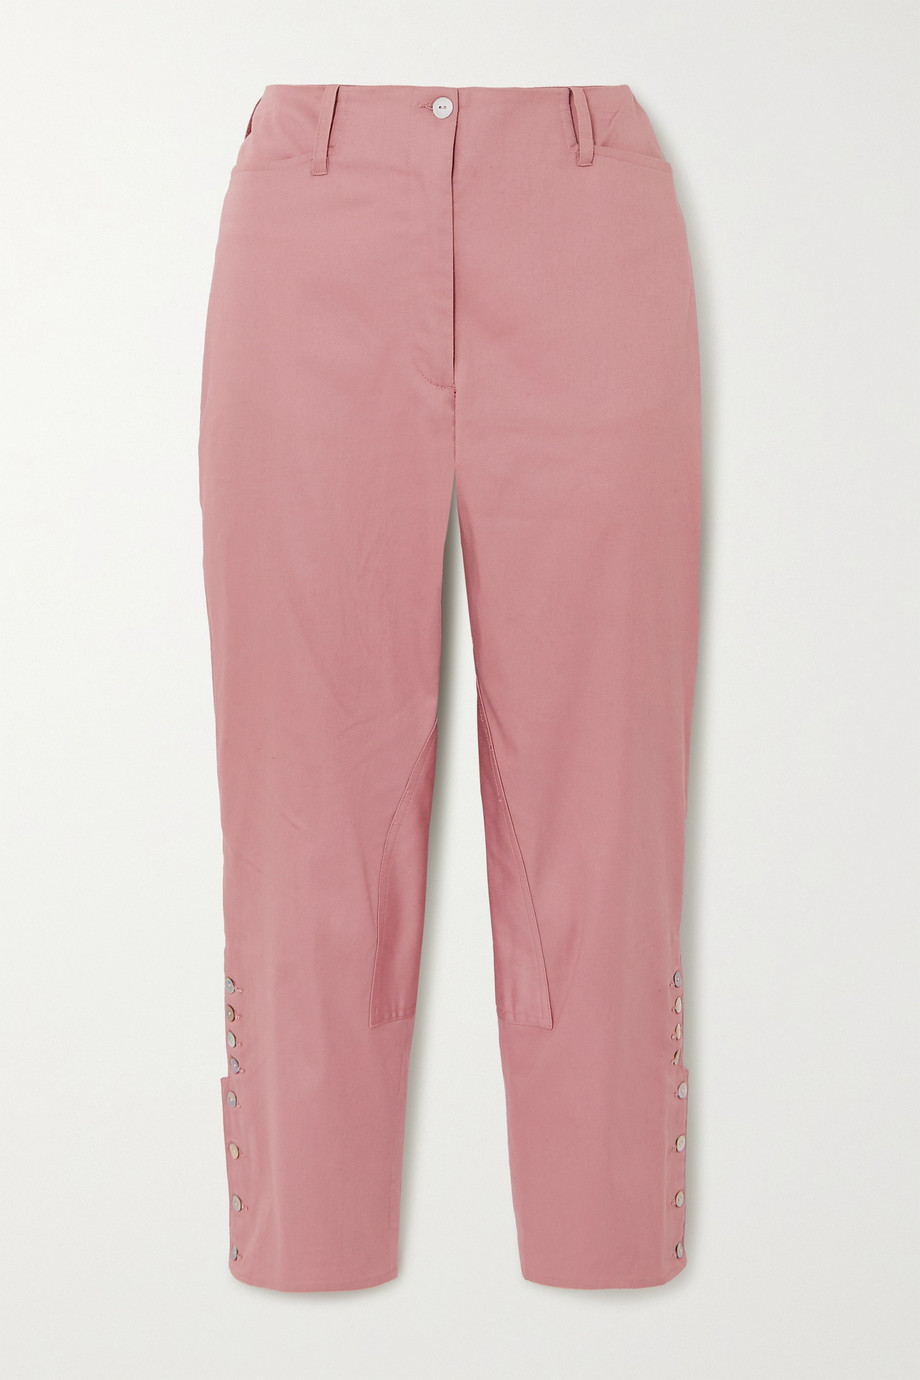 Àcheval Pampa Al Beso cotton-blend tapered pants